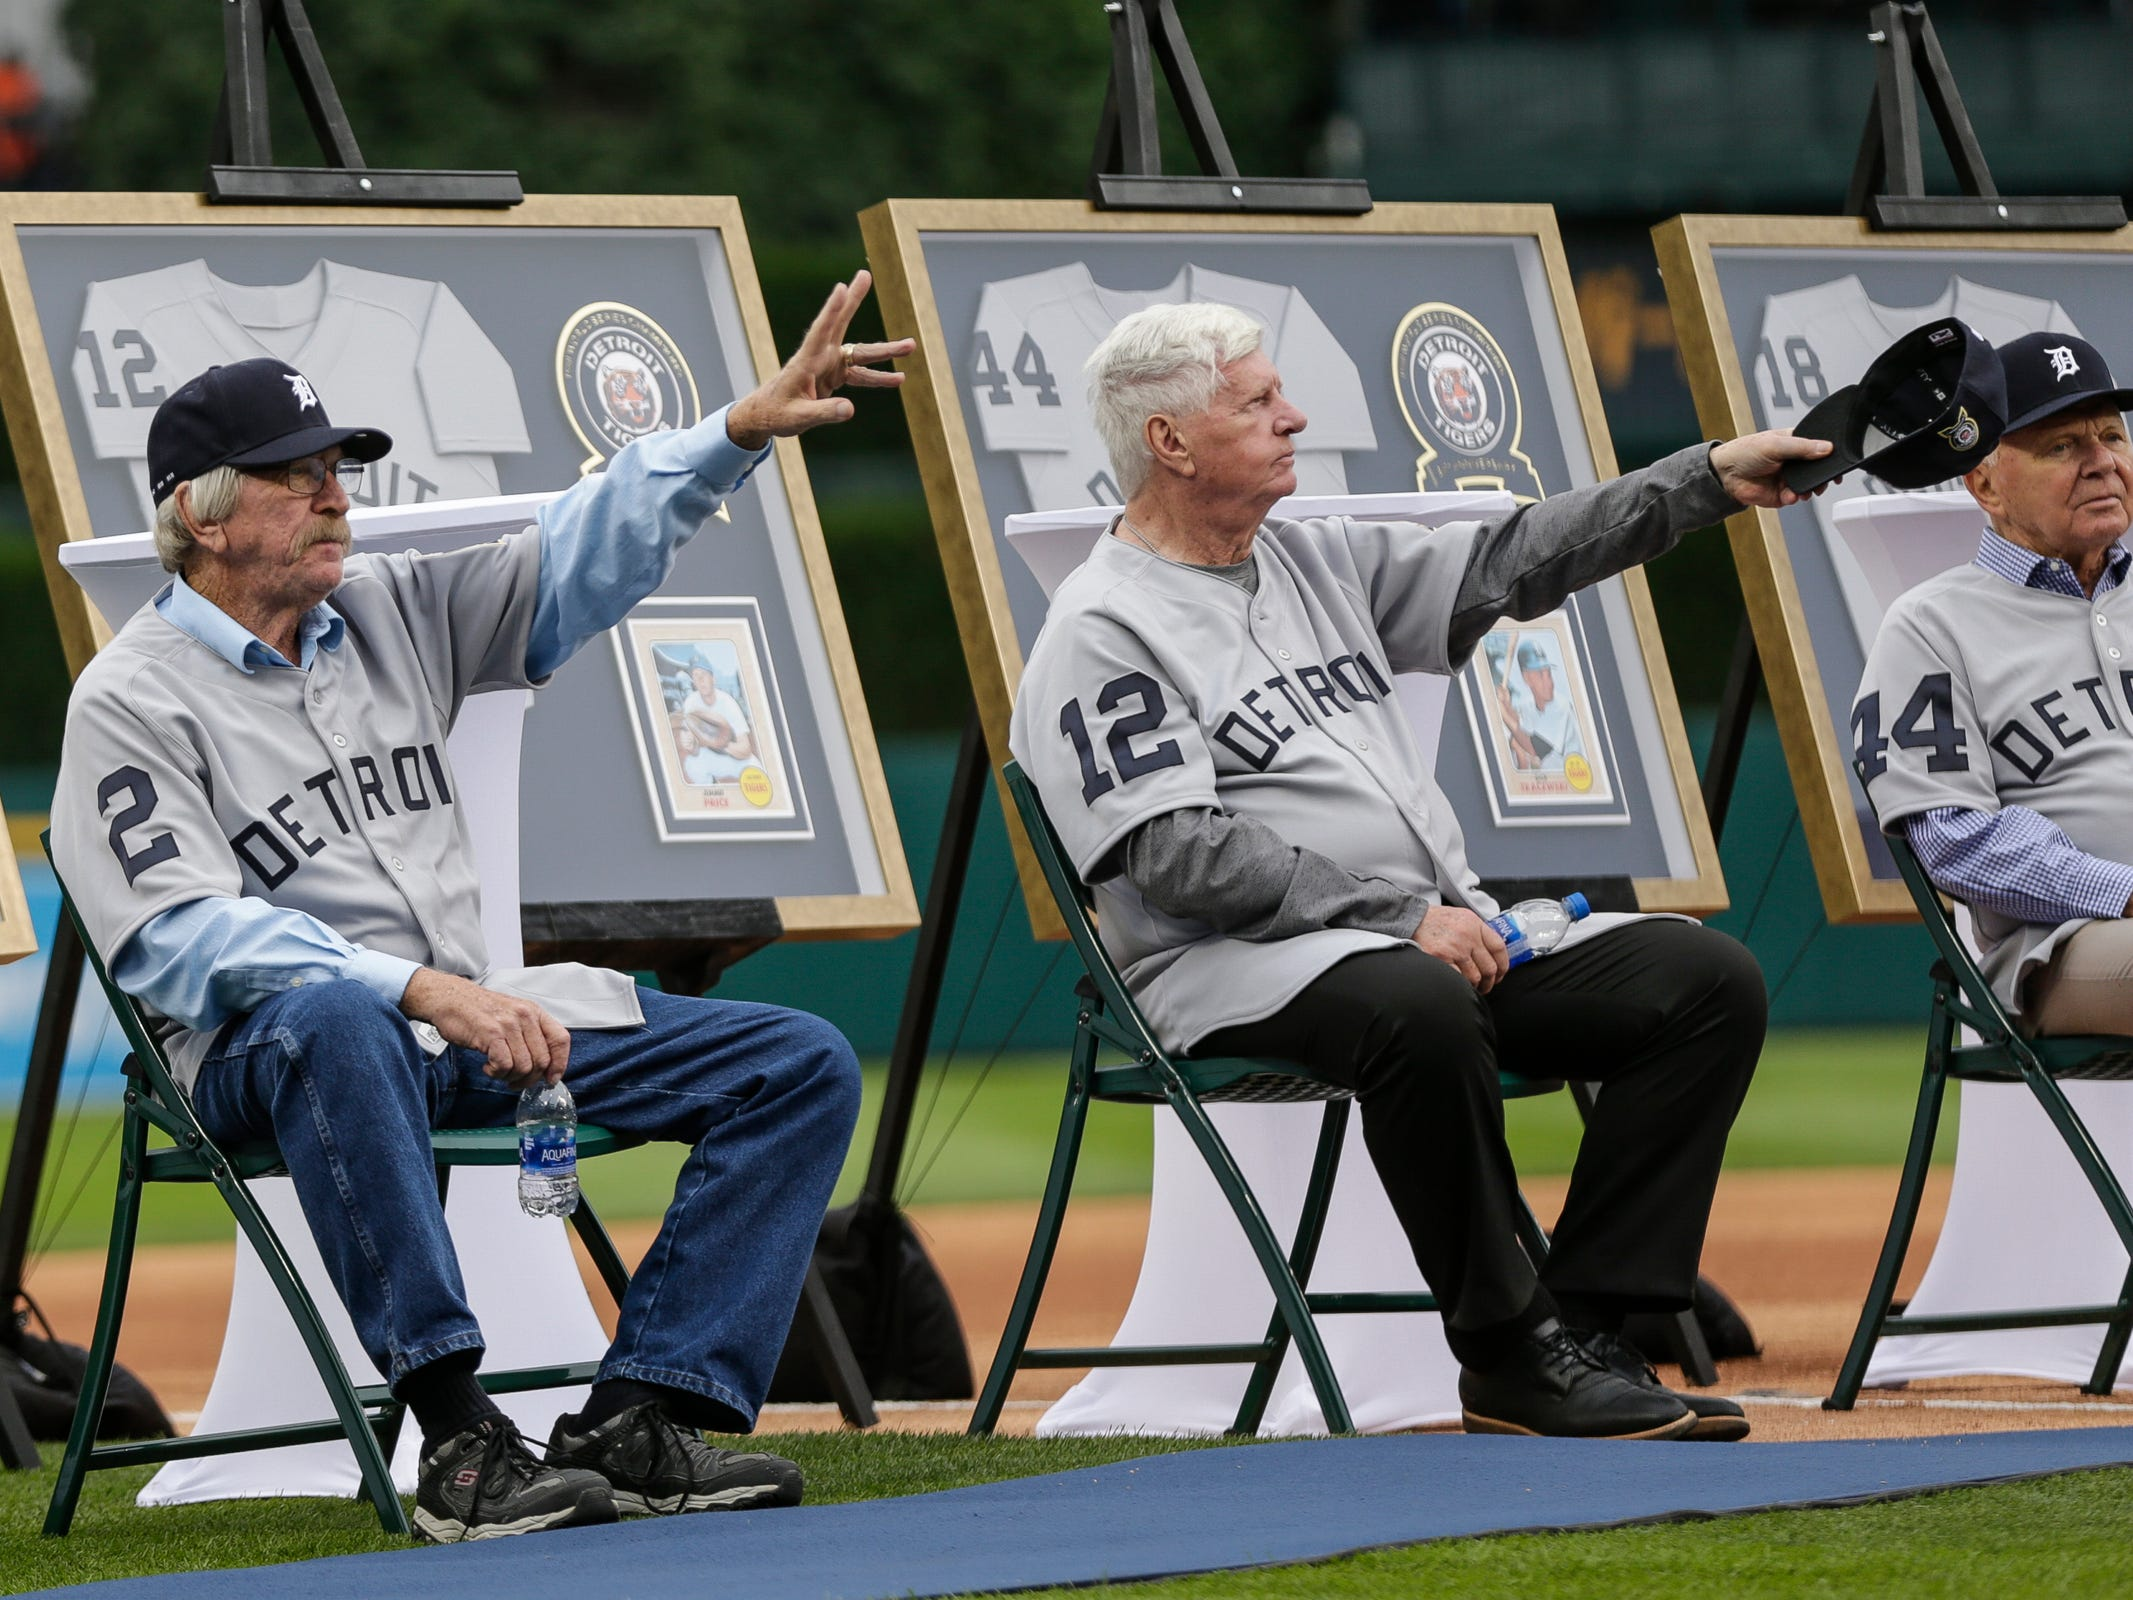 1968 Detroit Tigers World Series championship team is honored, including Tom Matchick (2) and Jim Price (12), during the celebration of the 50th anniversary of the 1968 World Series championship at Comerica Park in Detroit, Saturday, Sept. 8, 2018.